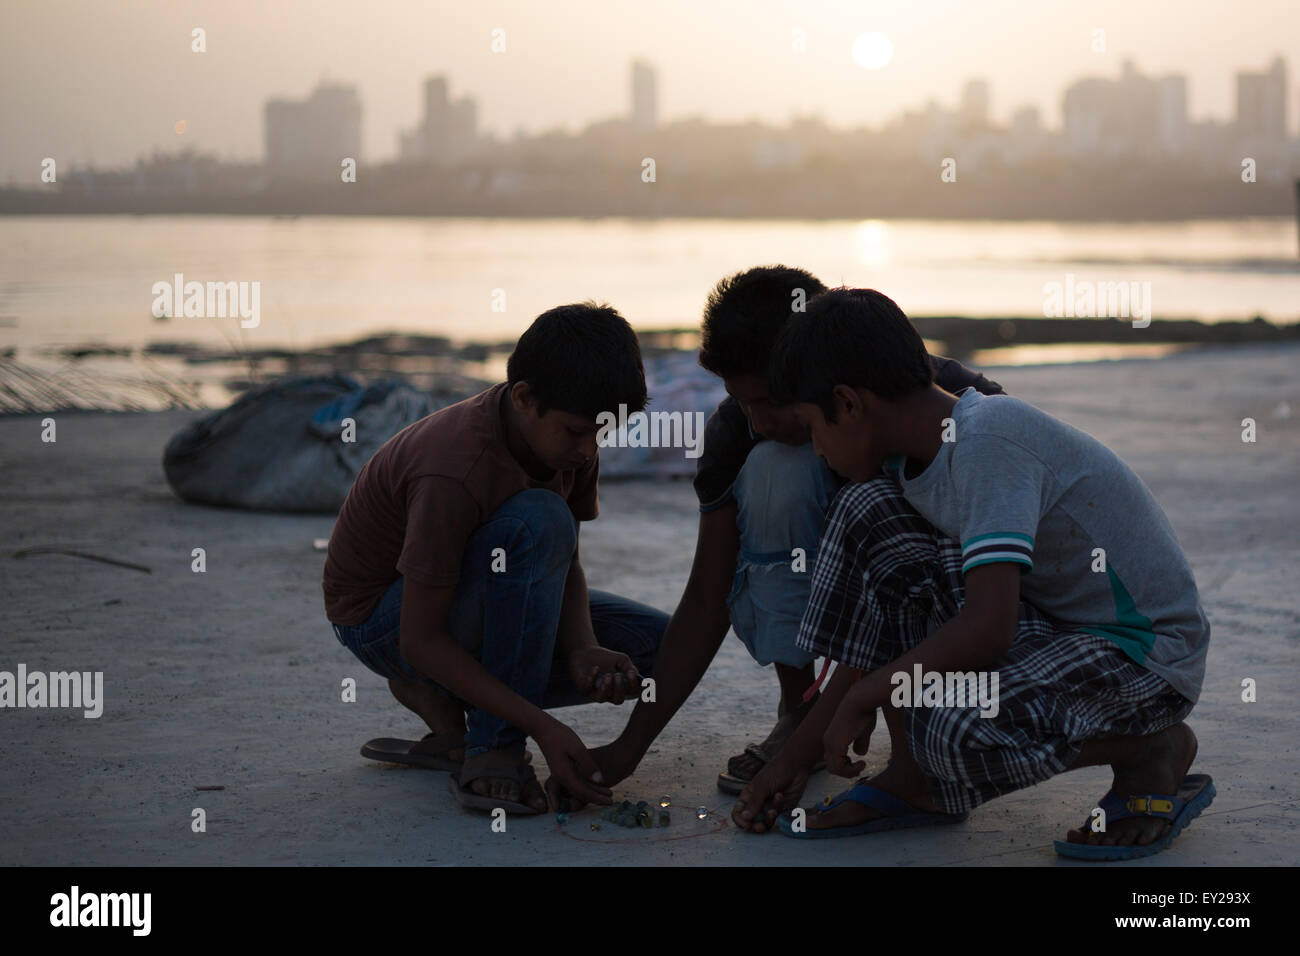 Indian kids playing marbles near the beach during sunset in Mumbai, India. - Stock Image